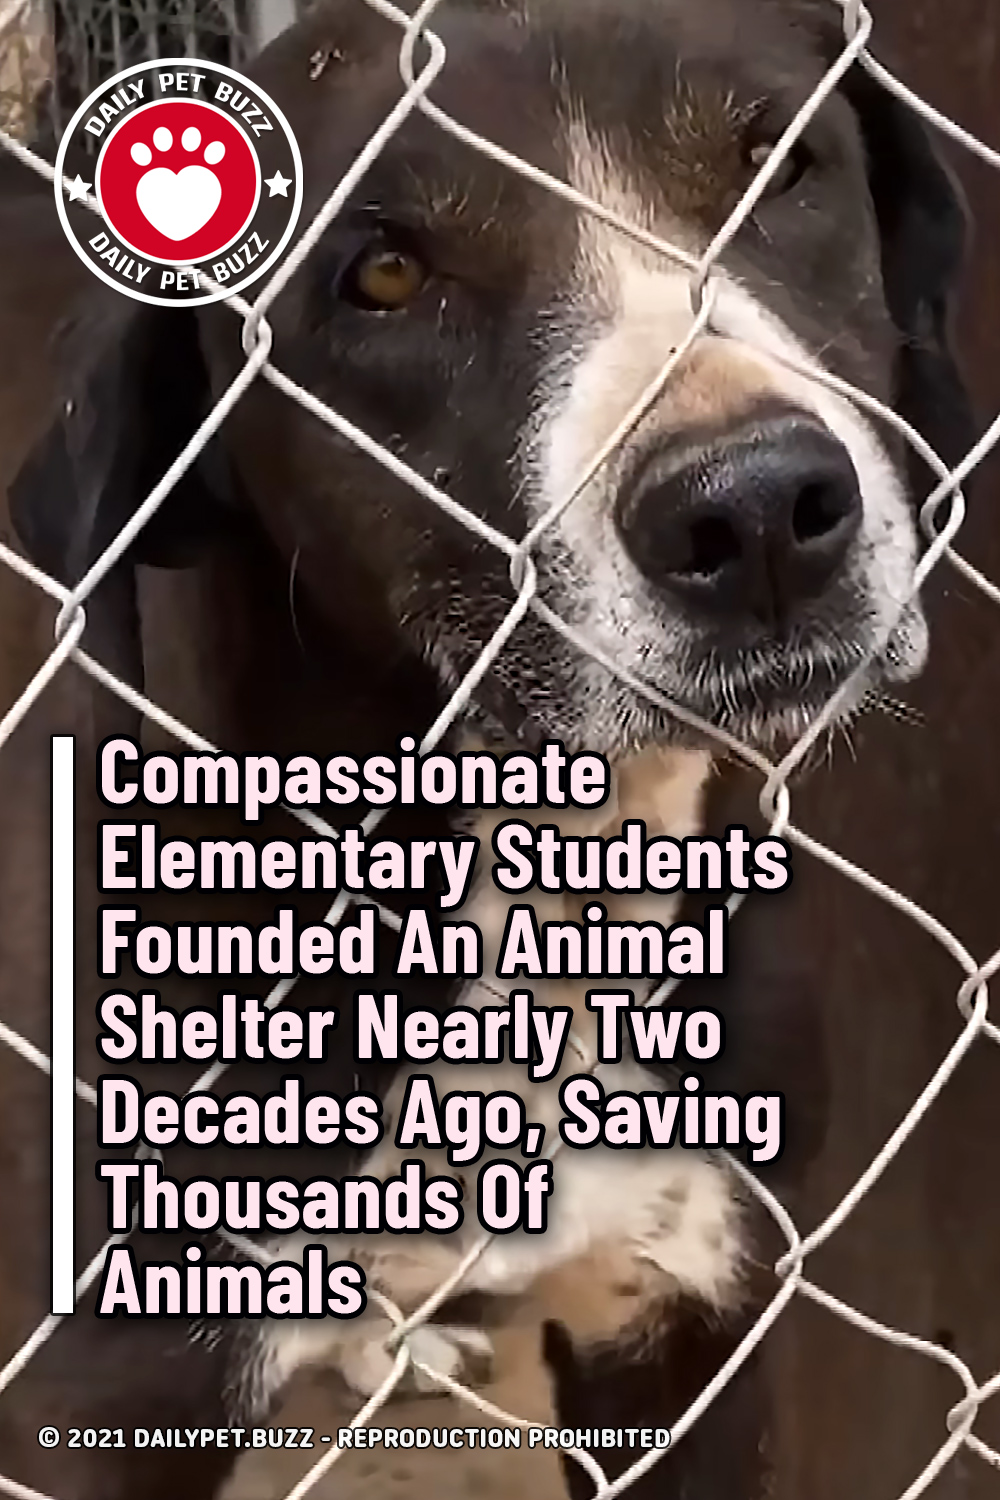 Compassionate Elementary Students Founded An Animal Shelter Nearly Two Decades Ago, Saving Thousands Of Animals